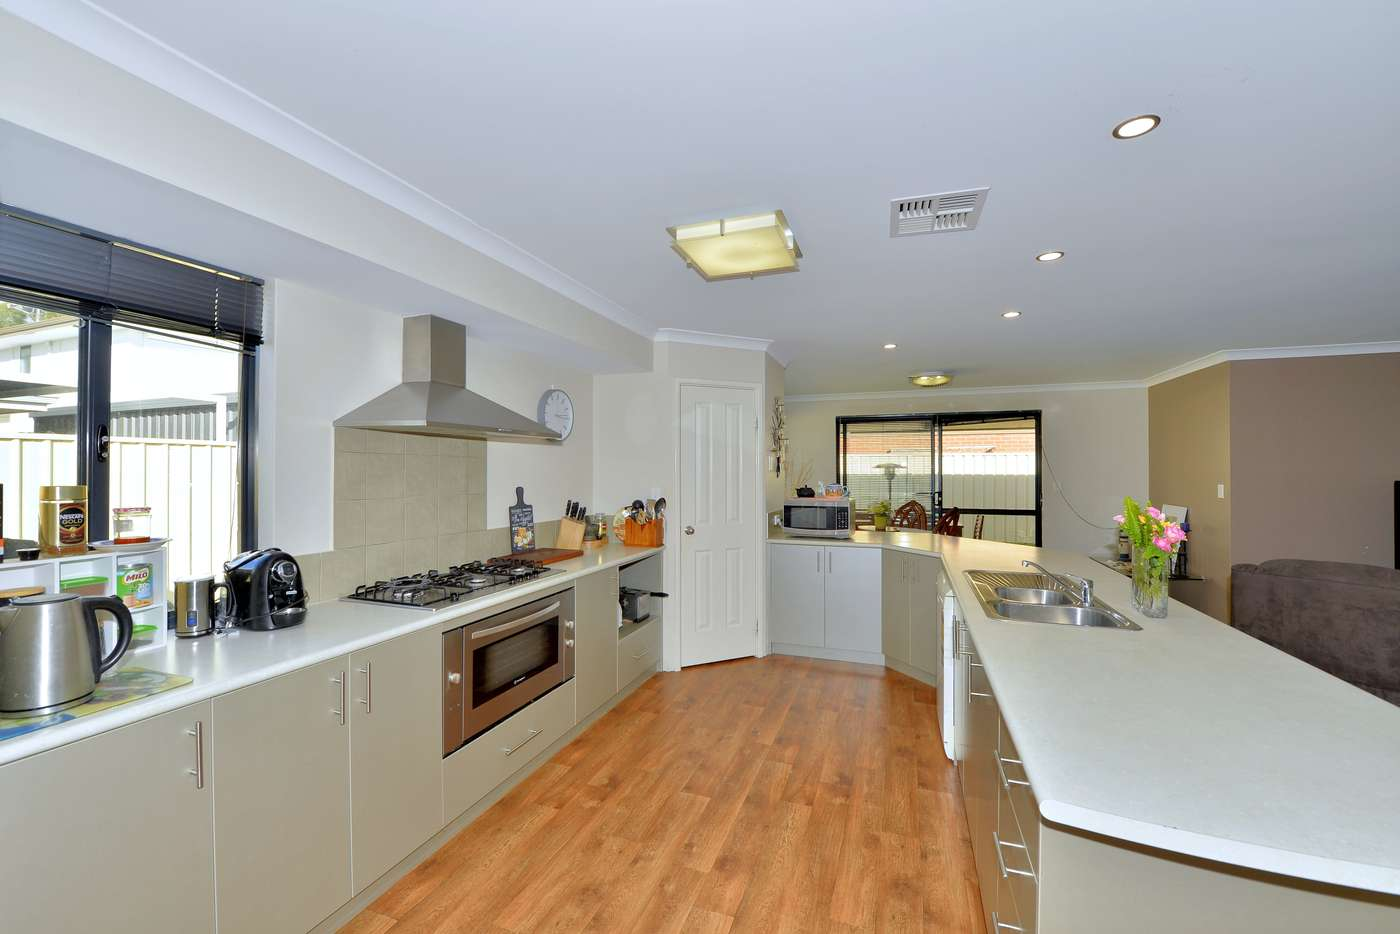 Sixth view of Homely house listing, 11/70 Rodoreda Crescent, Ravenswood WA 6208